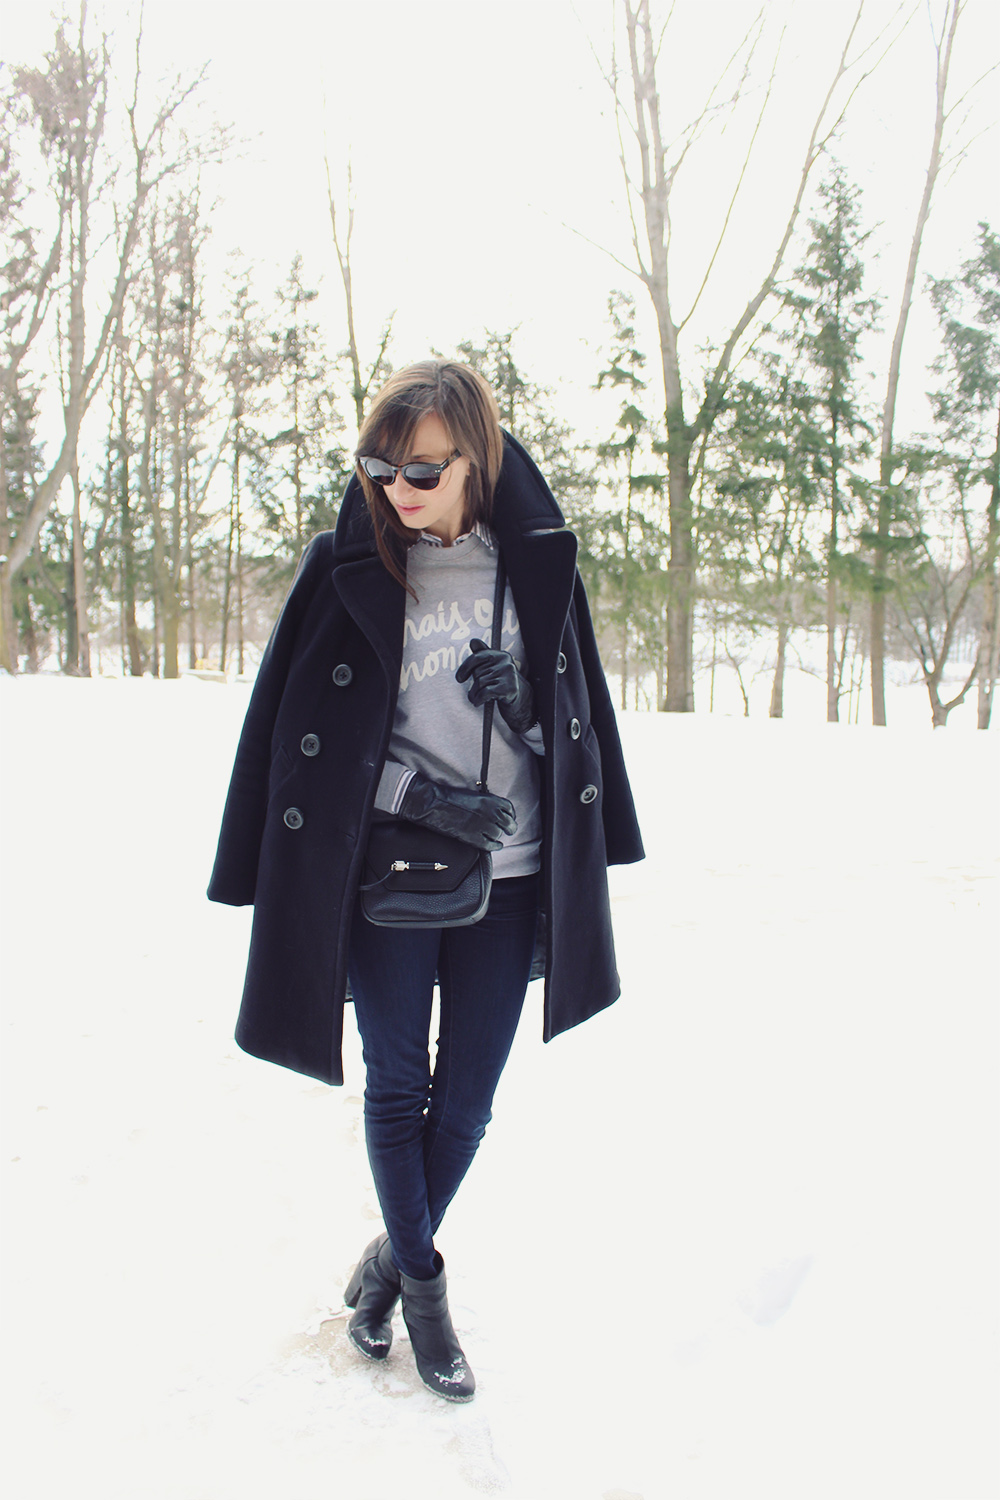 Style Bee - Mais Oui, Mon Cherie Sweatshirt and all black.